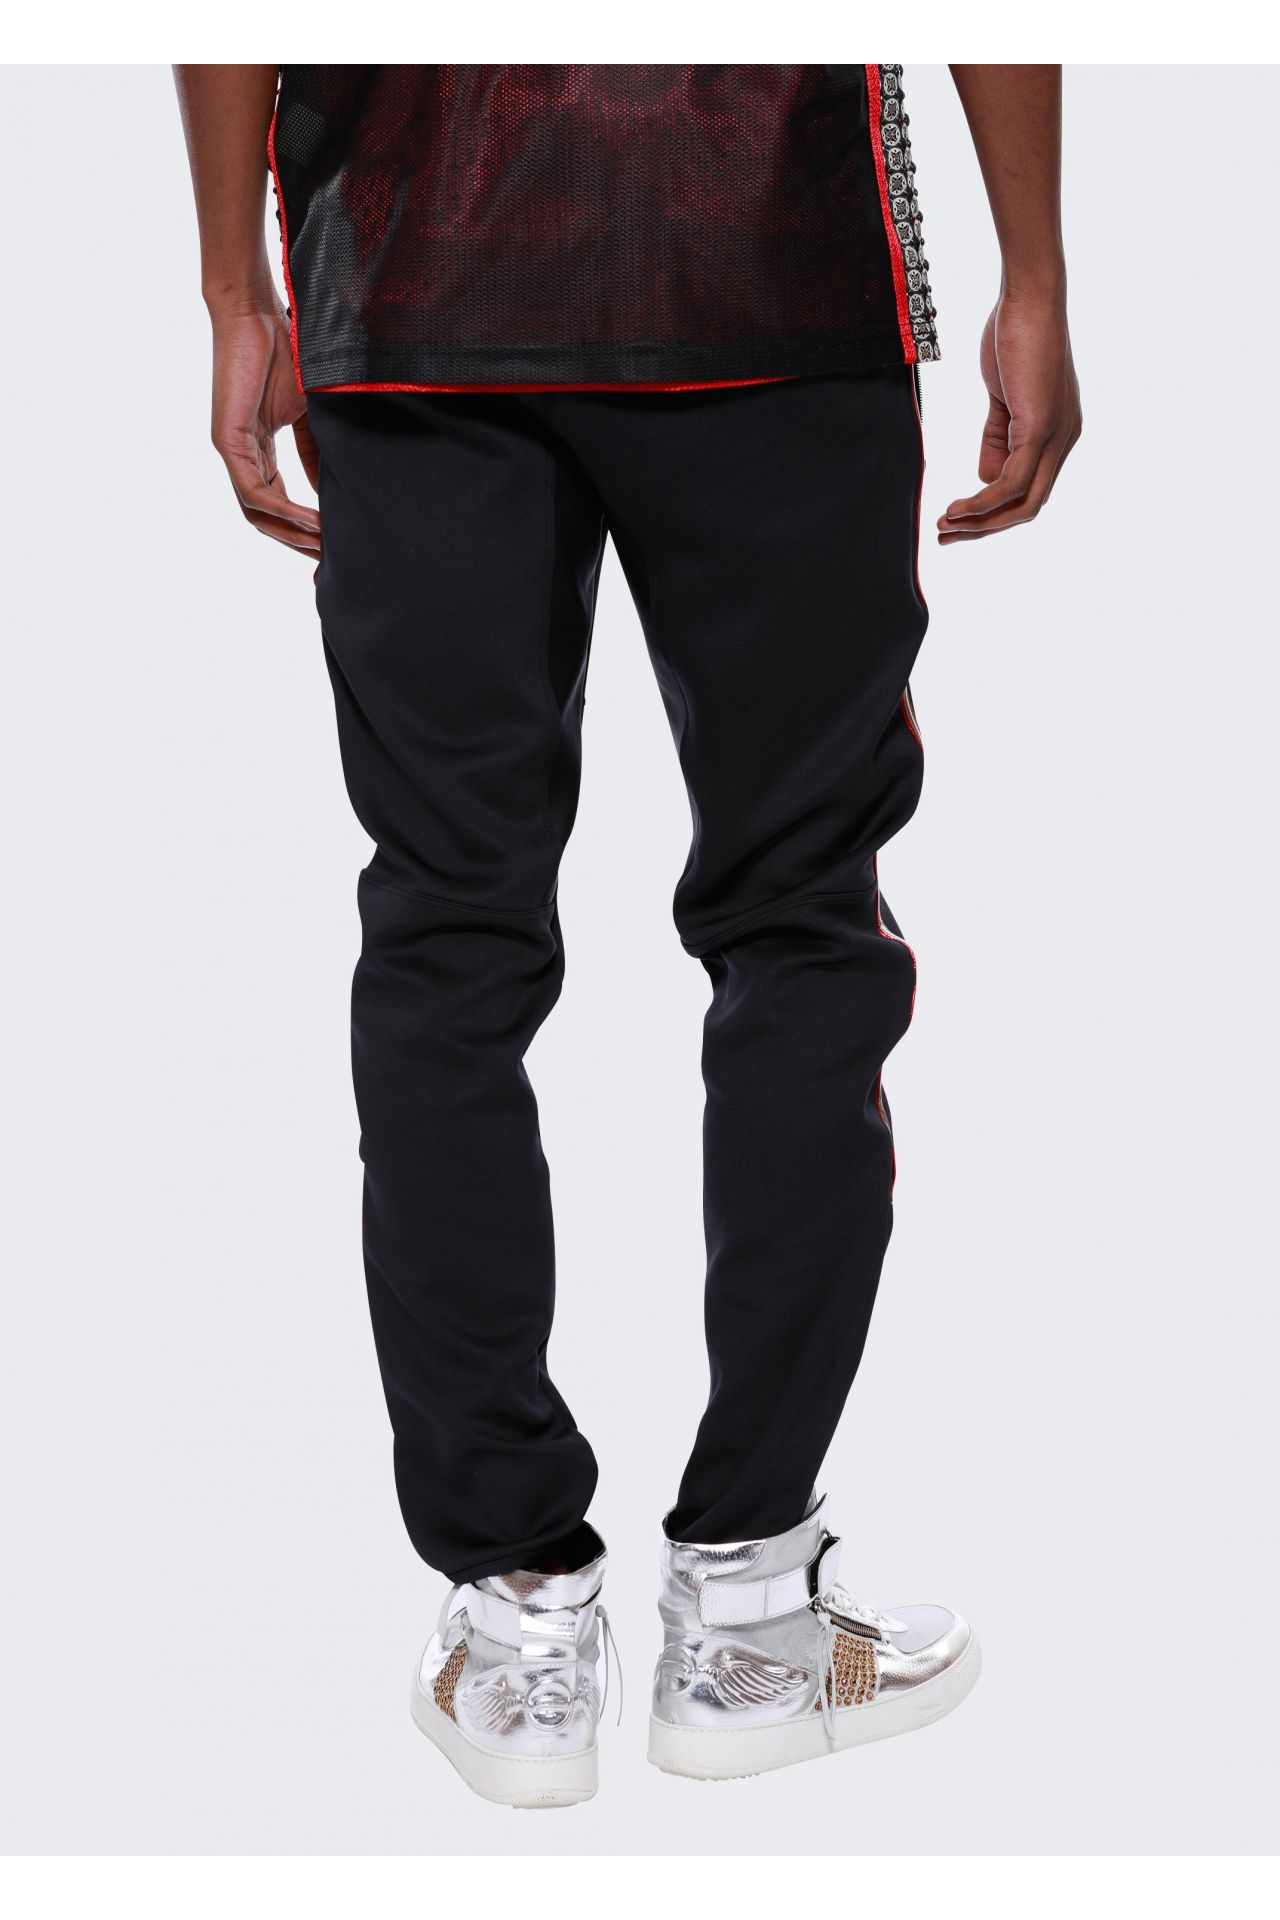 JOGGER PIPING IN BLACK